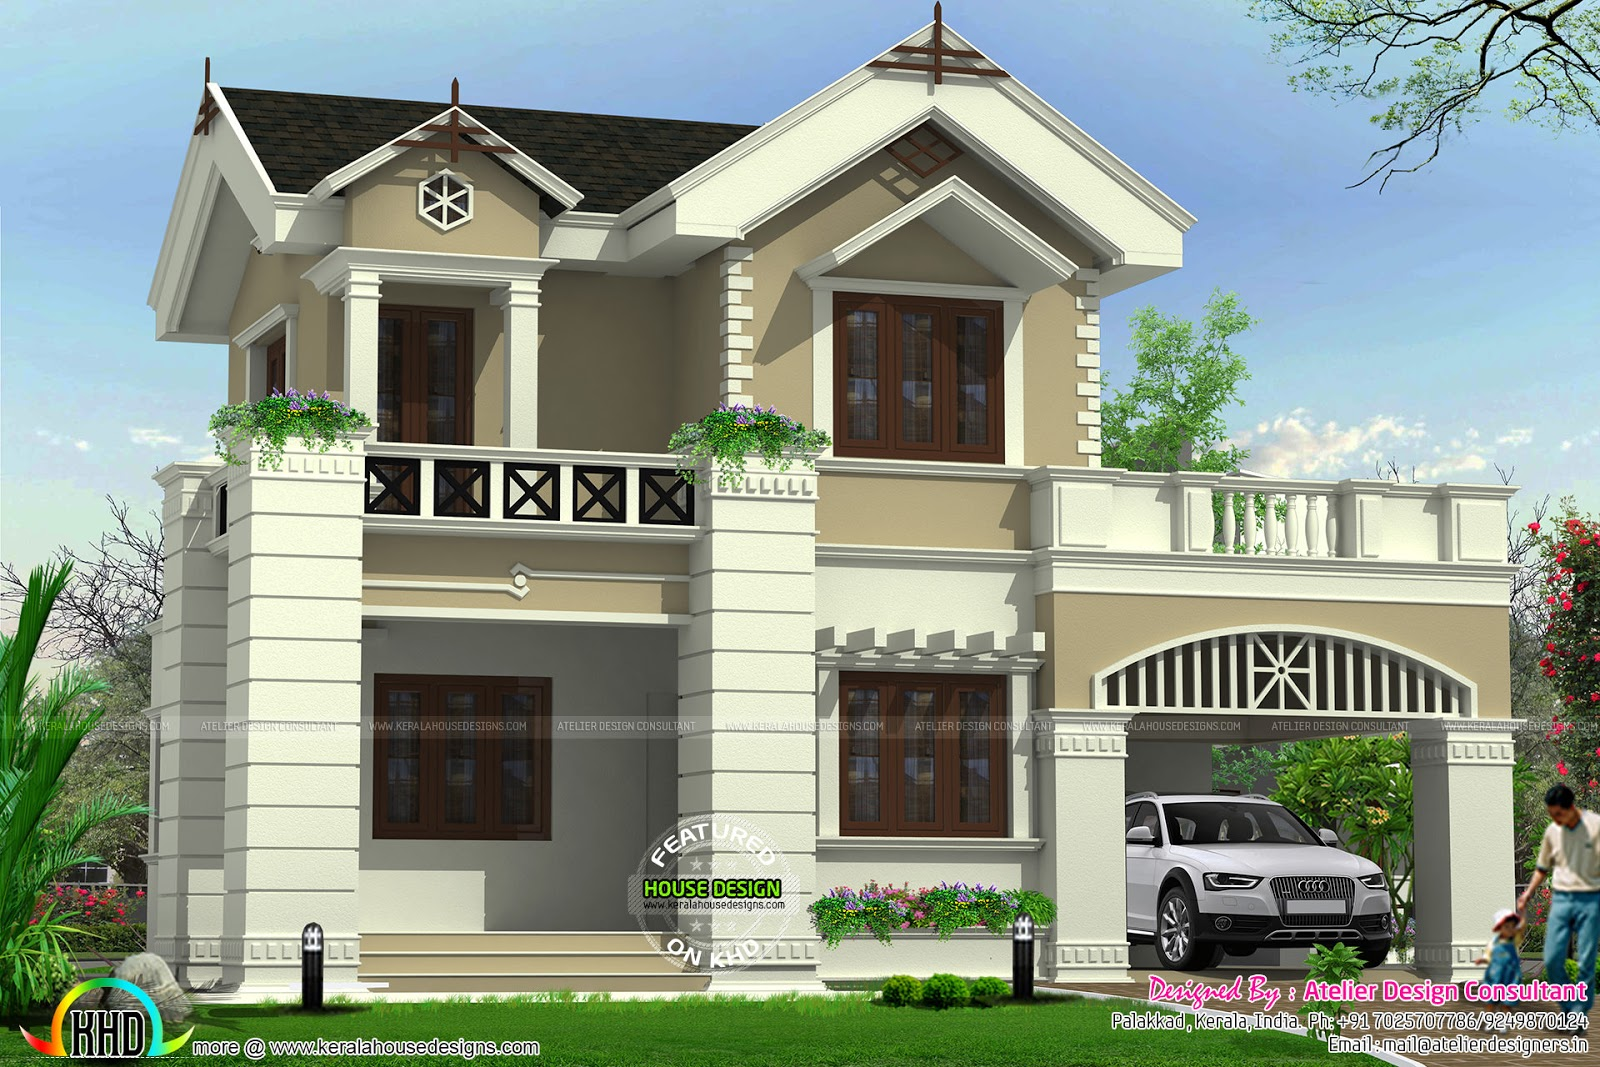 Cute victorian model home kerala home design and floor plans for In home design